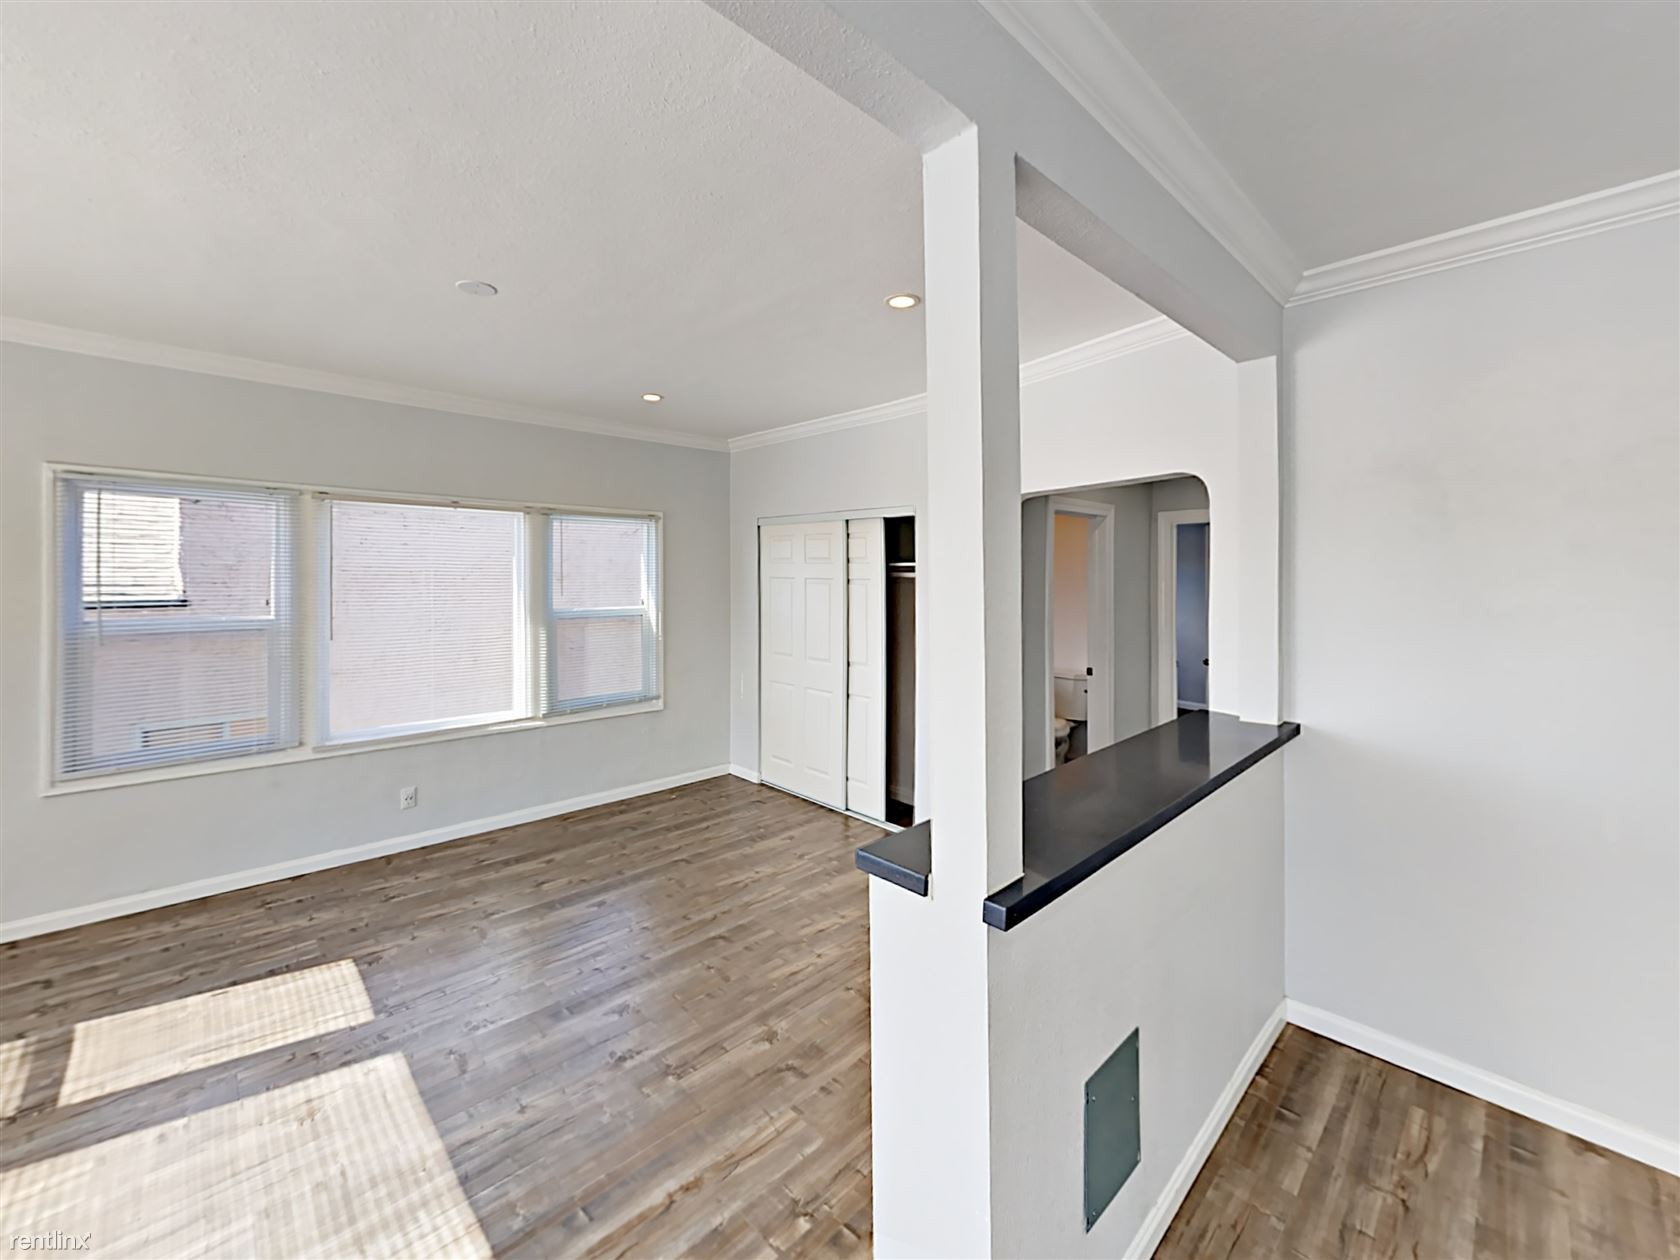 Renting in oakland what will 2 300 get you hoodline for 260 parkview terrace oakland ca